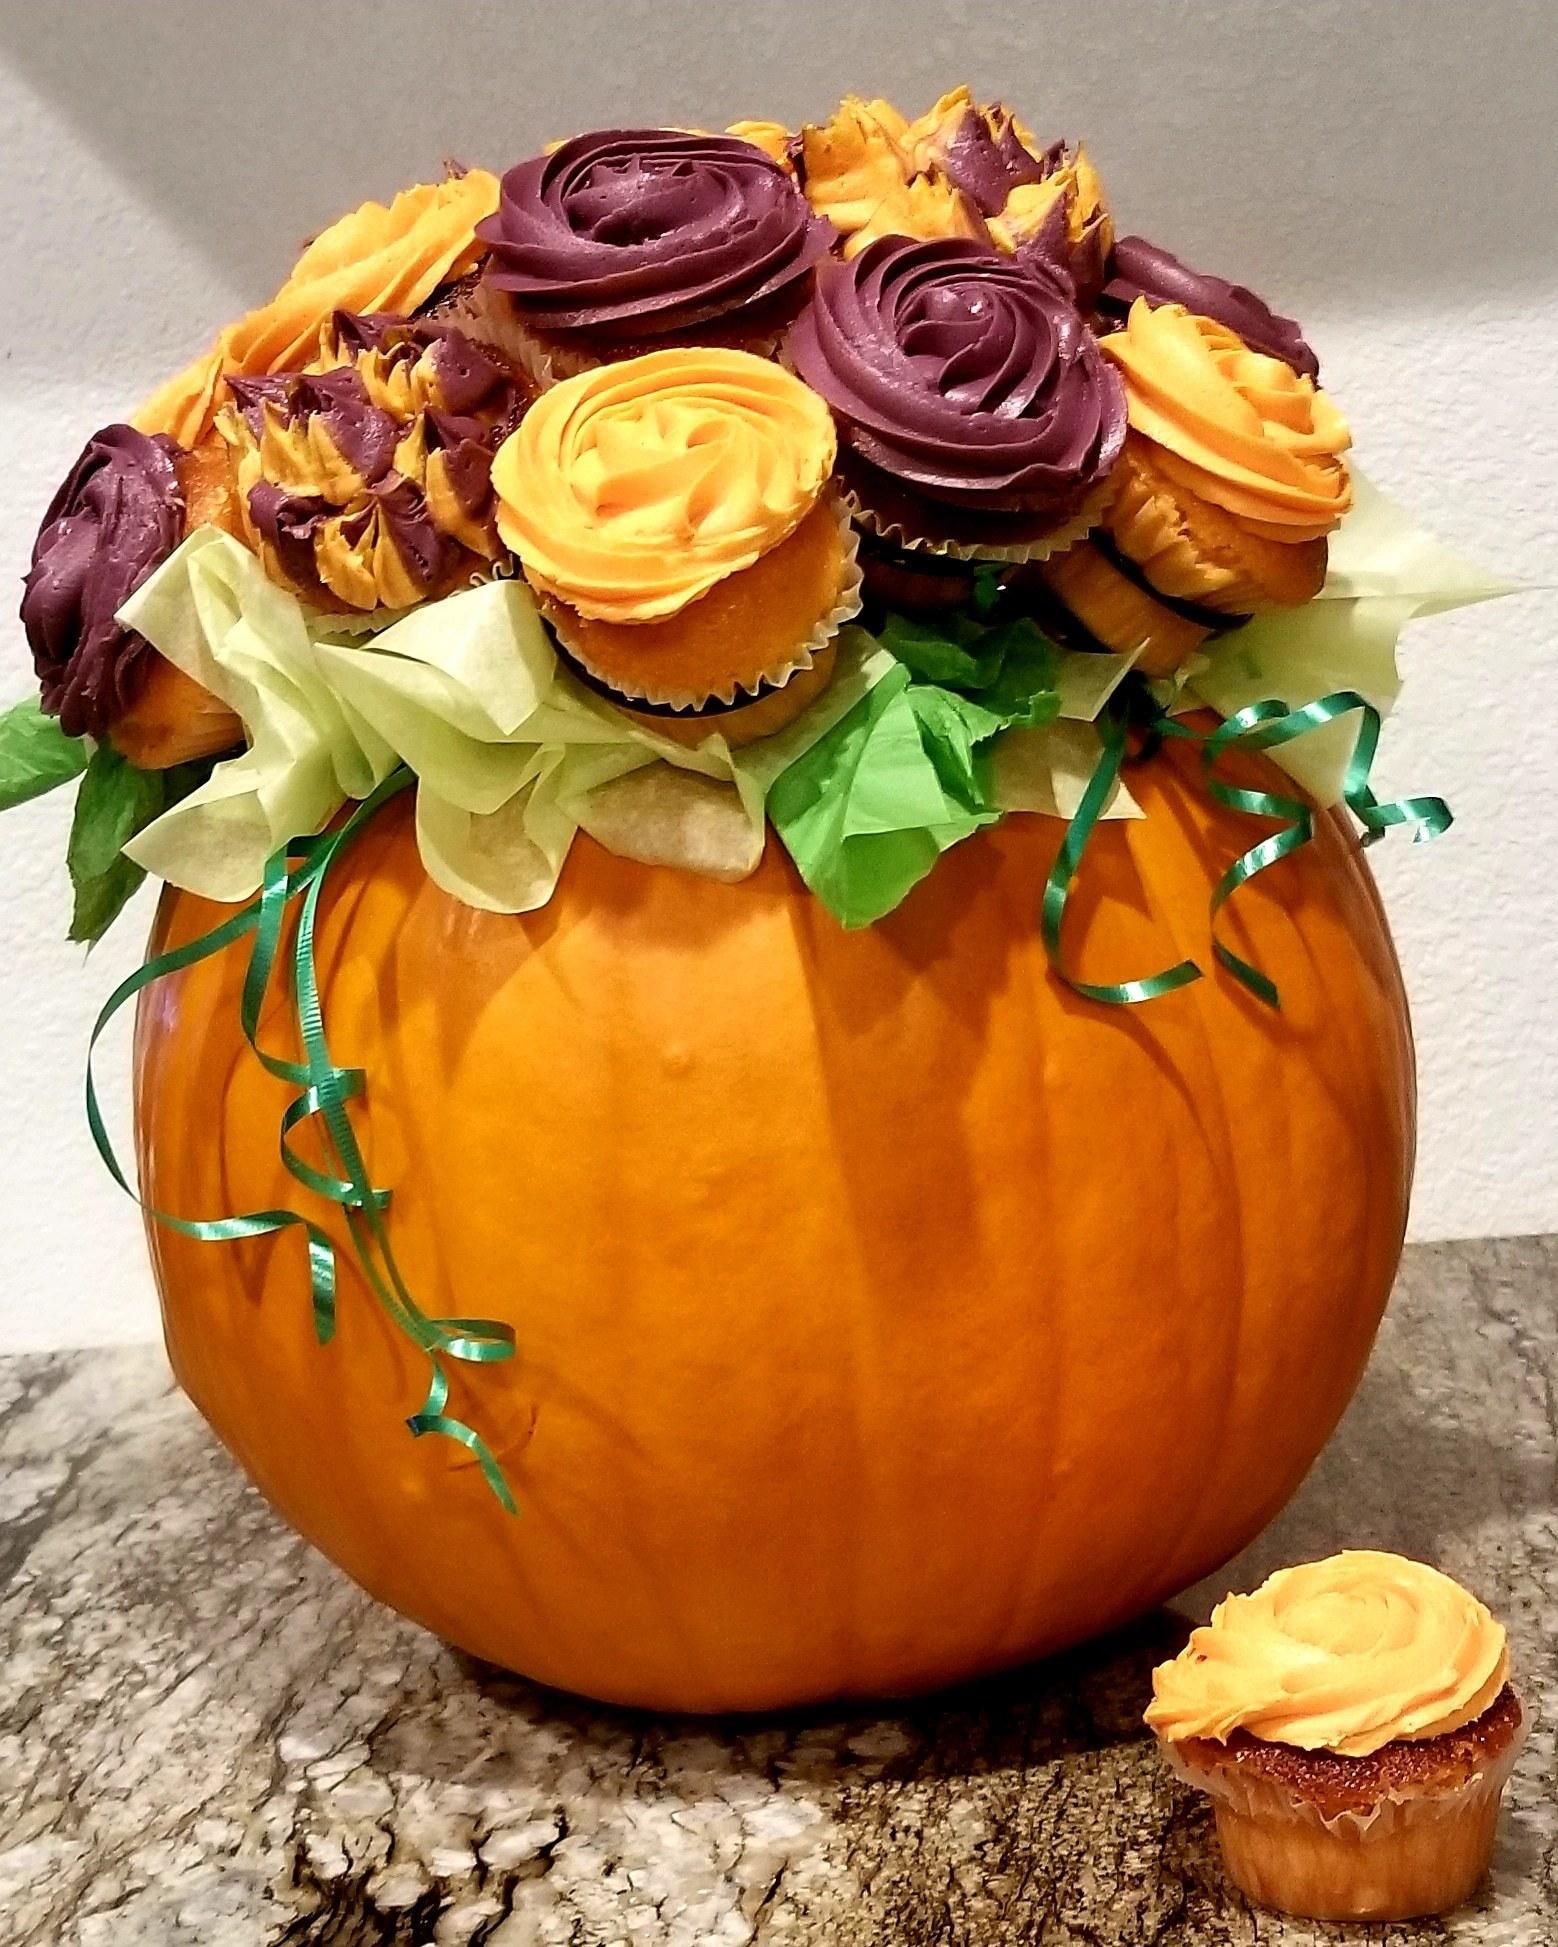 Pumpkin Cupcake Bouquet - Be the talk of the party when you bring along this gorgeous table centerpiece/dessert/hostess gift! Once your friends figure out that your bouquet is made of CUPCAKES, you will have all the attention you desire! This deliciously adorable bouquet is made by carving out a pumpkin, inserting The Cupcake Rack and 19 cupcakes, along with some tissue and ribbon! Easy and oh so beautiful!